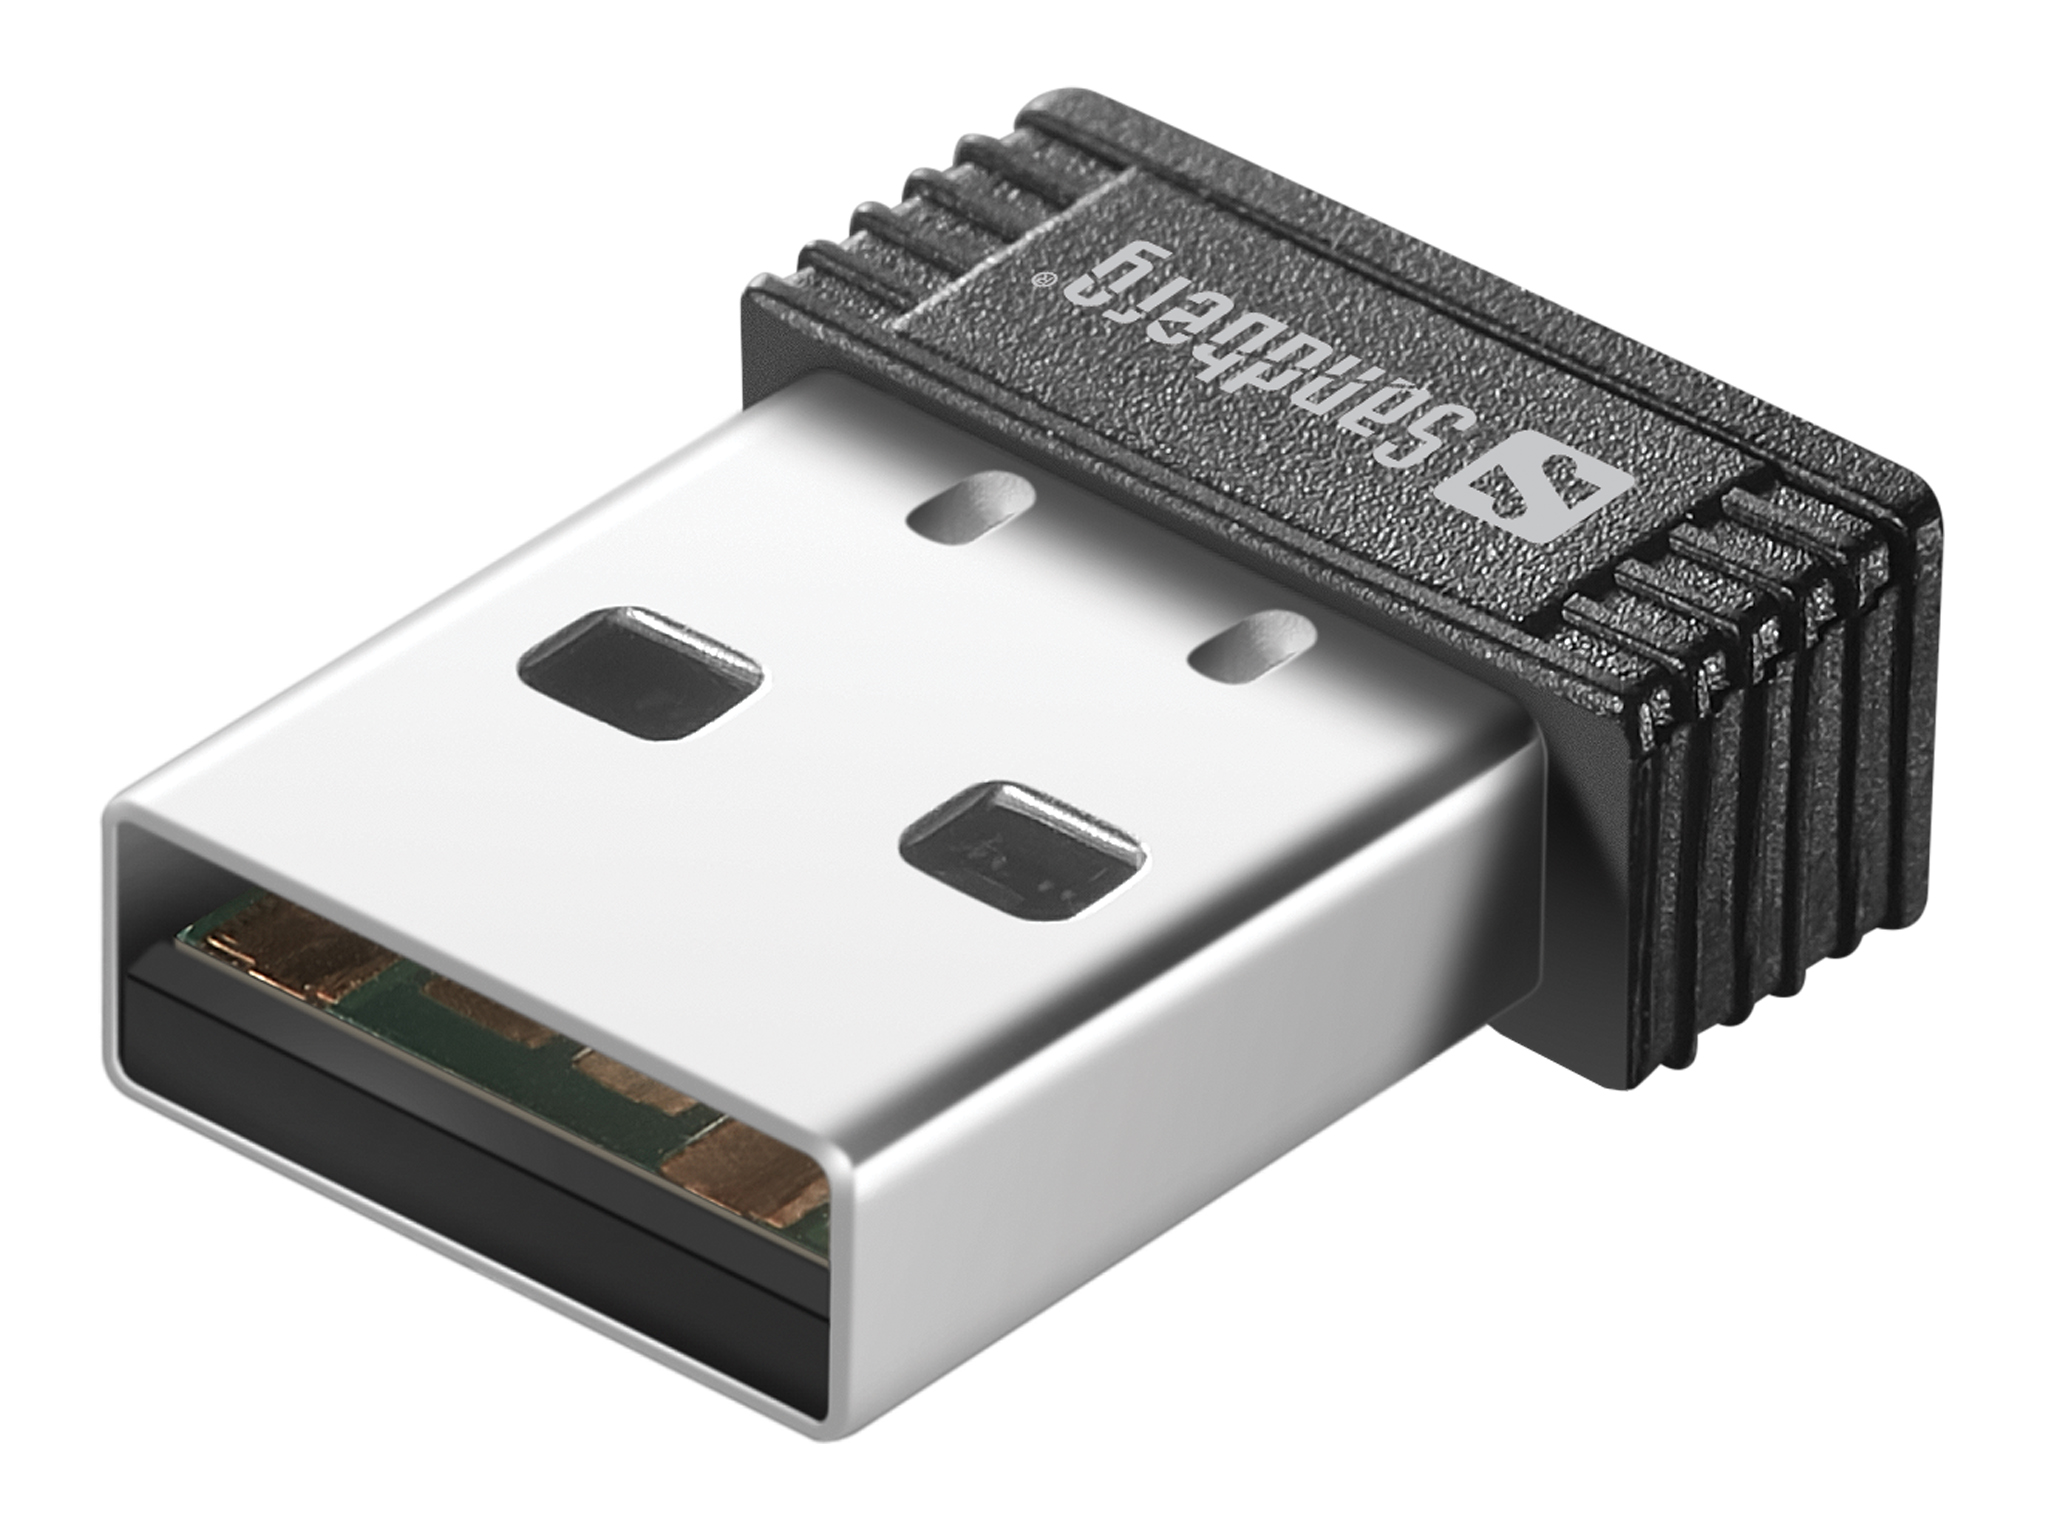 Micro WiFi USB Dongle